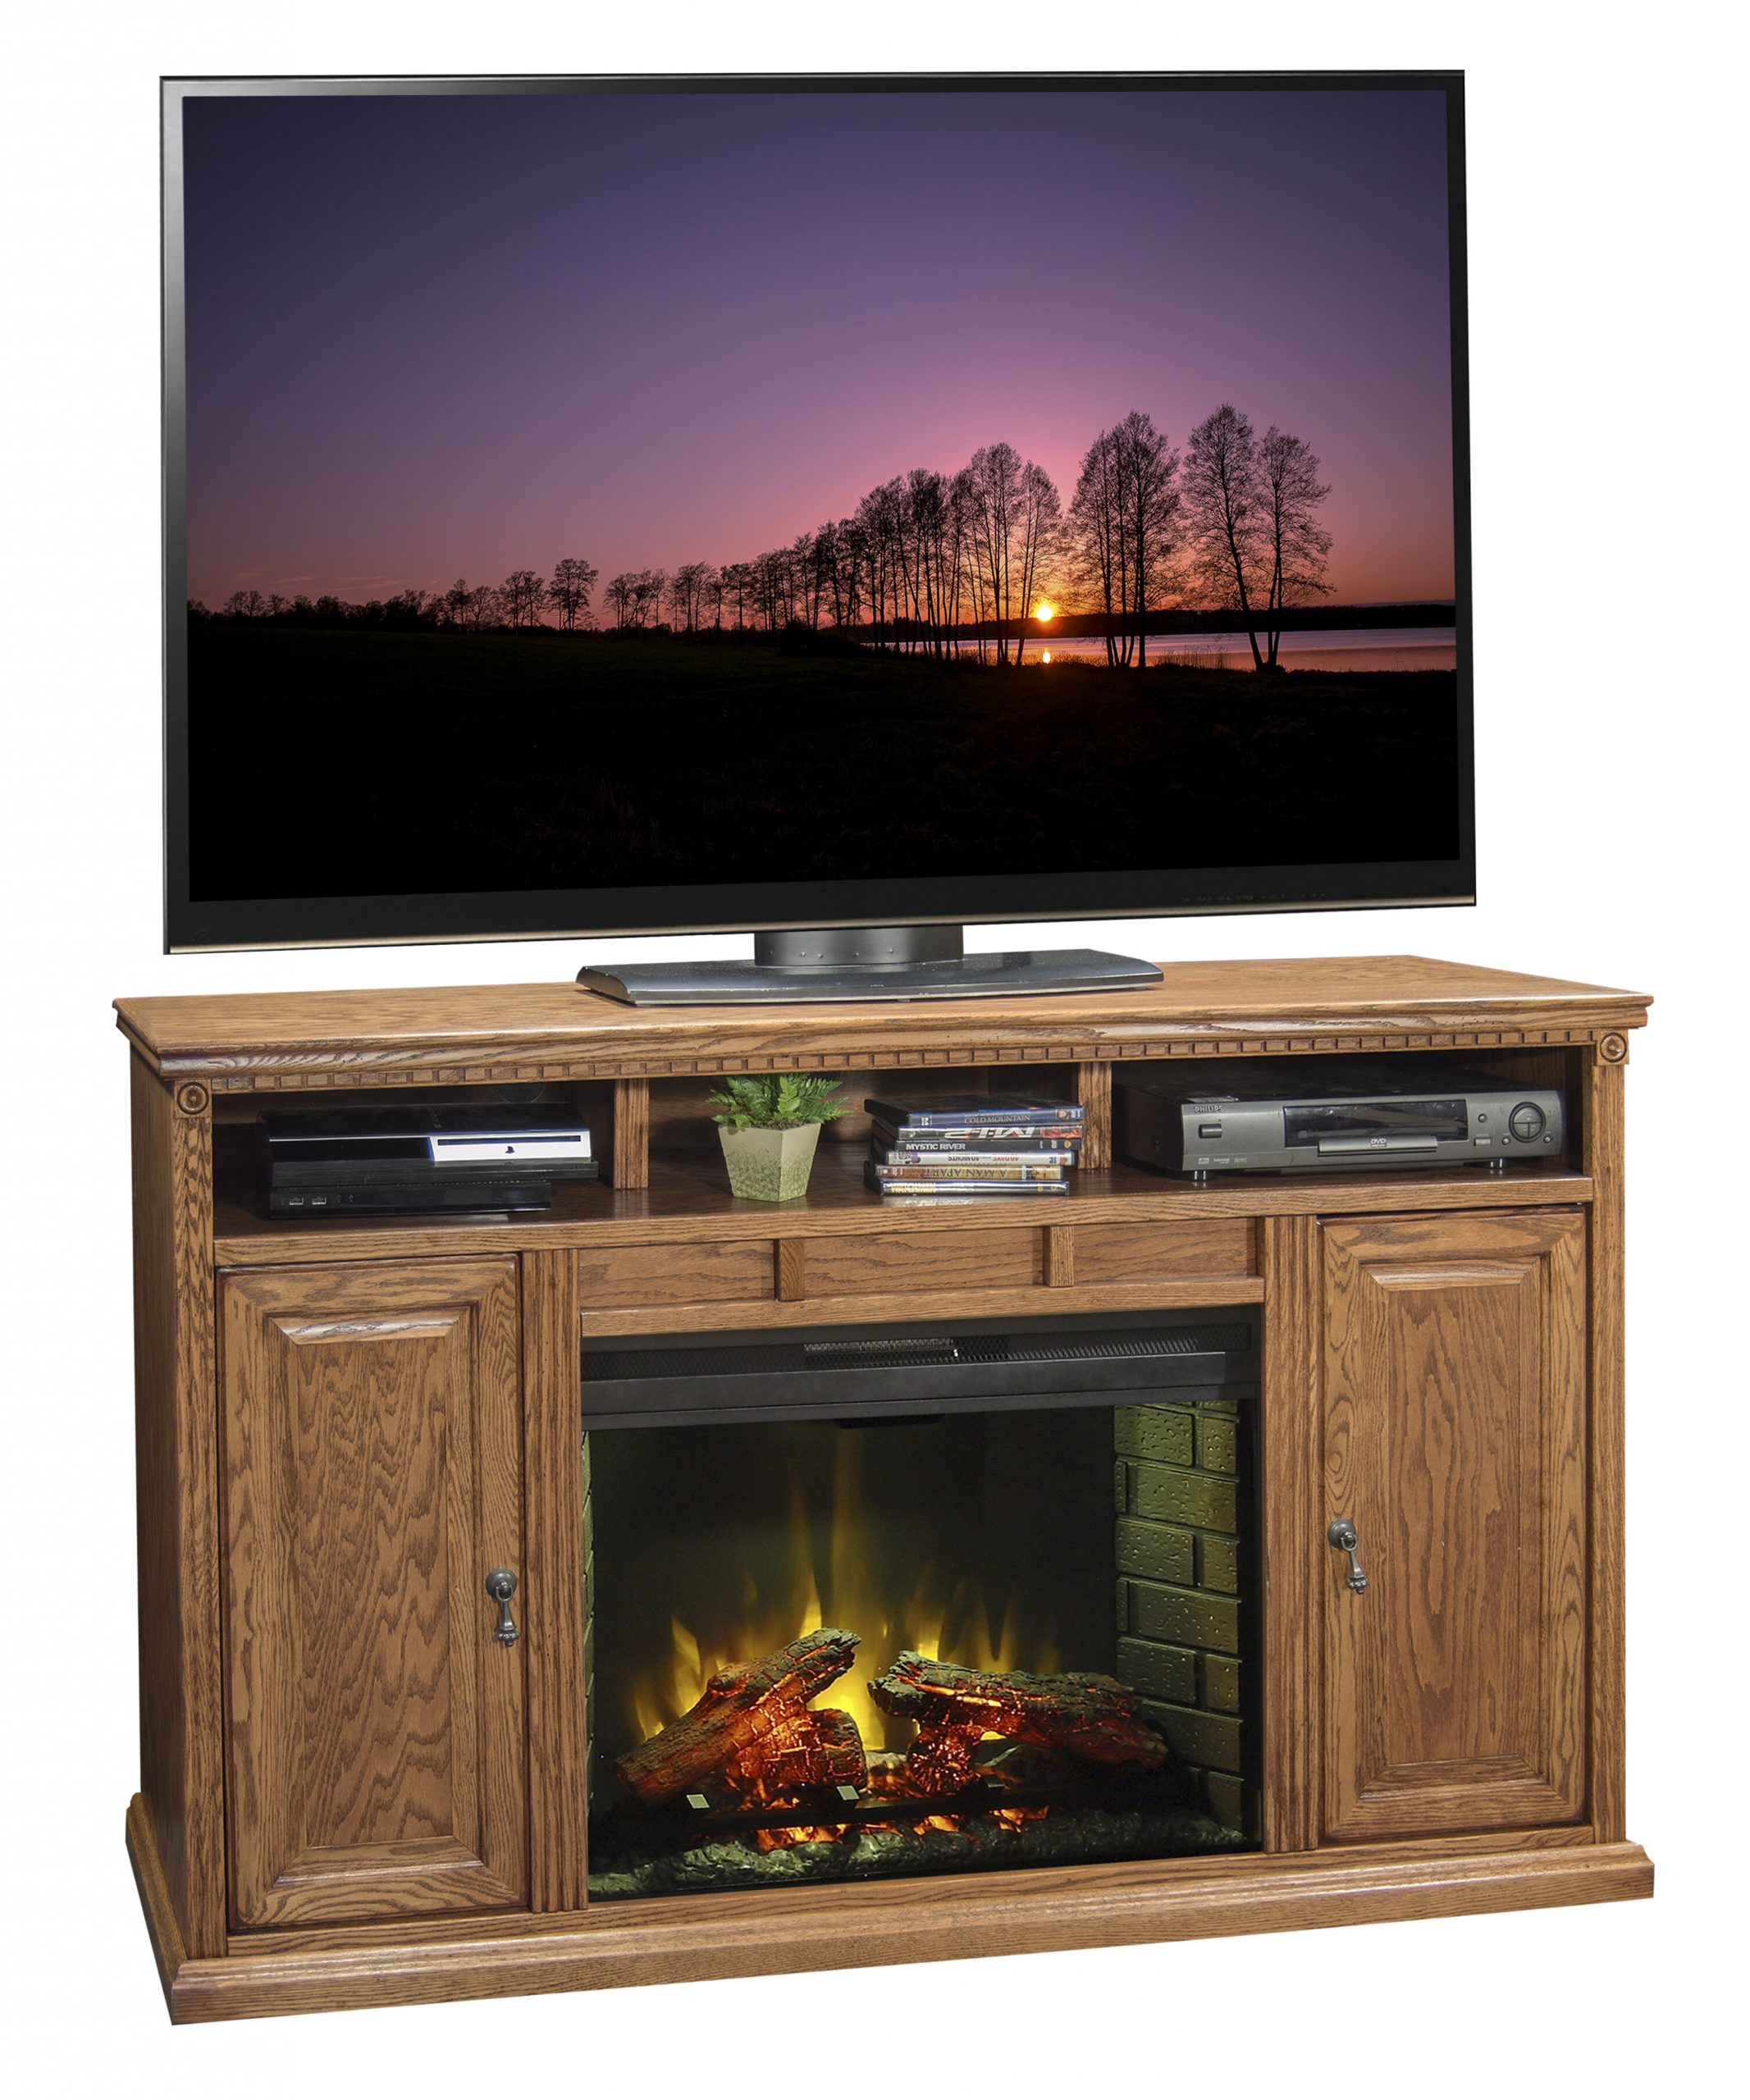 legends furniture scottsdale solid wood tv stand for tvs up to 70 with electric fireplace included lfn1839